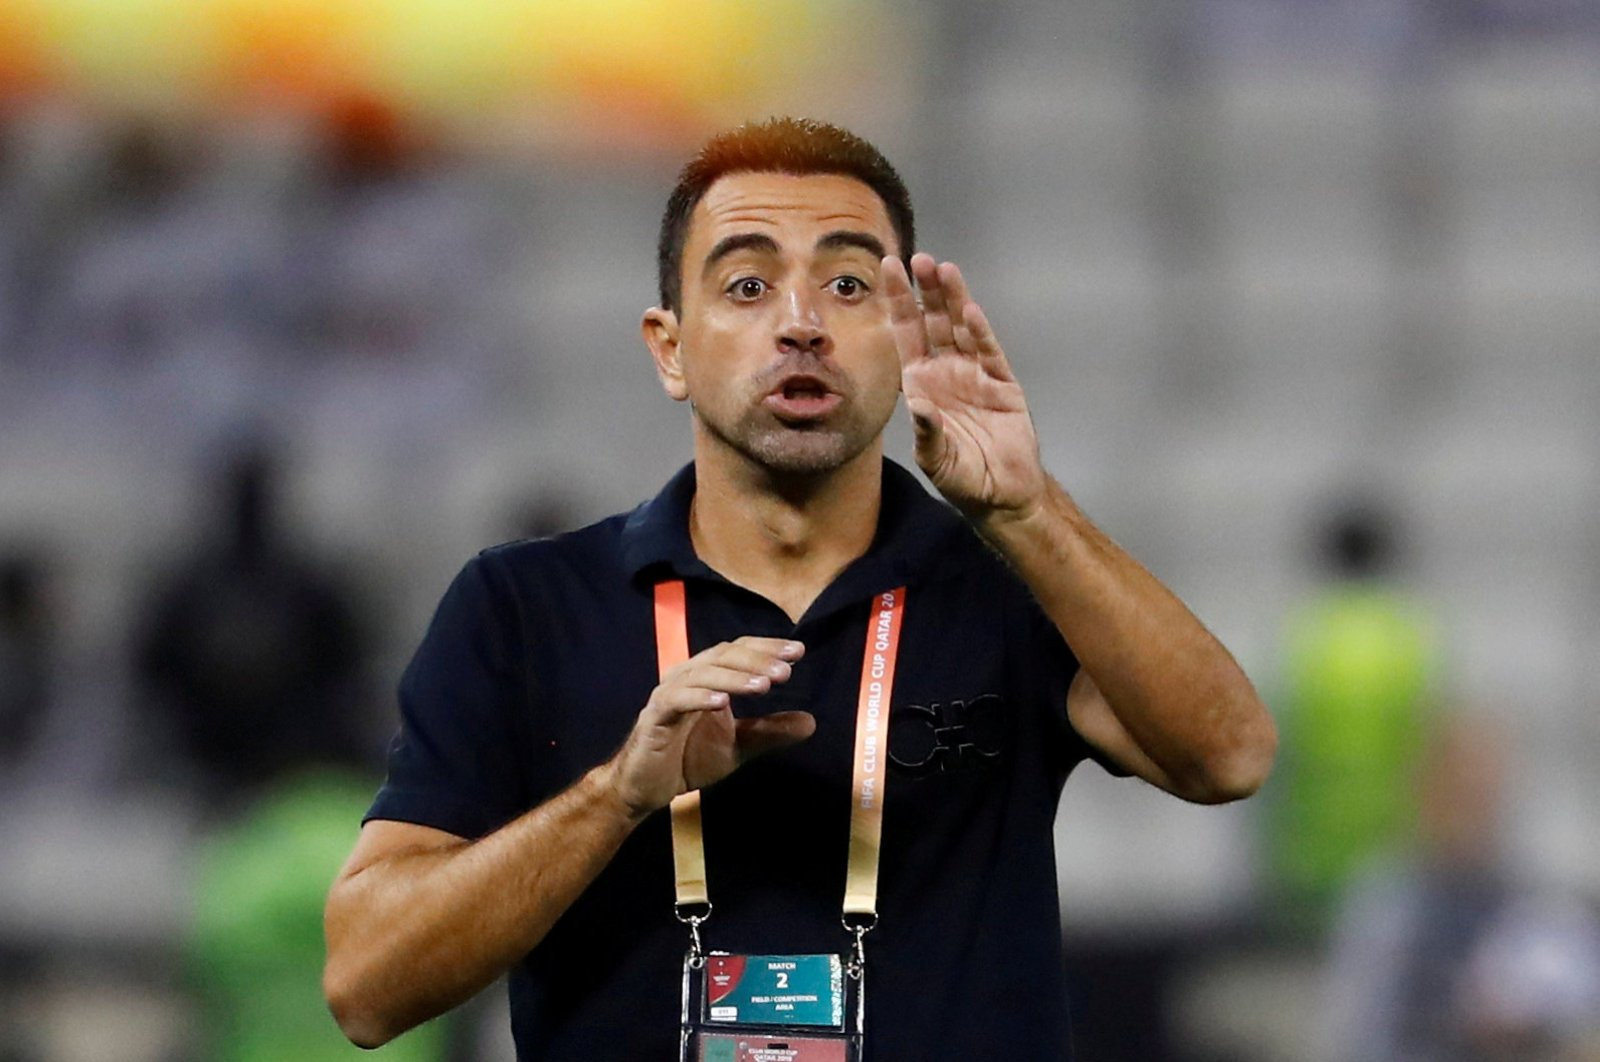 Al Sadd coach Xavi Hernandez reacts during the Club World Cup quarterfinal football match between Monterrey and Al Sadd at the Jassim Bin Hamad Stadium in Doha, Qatar, Dec. 14, 2019. (Reuters Photo)